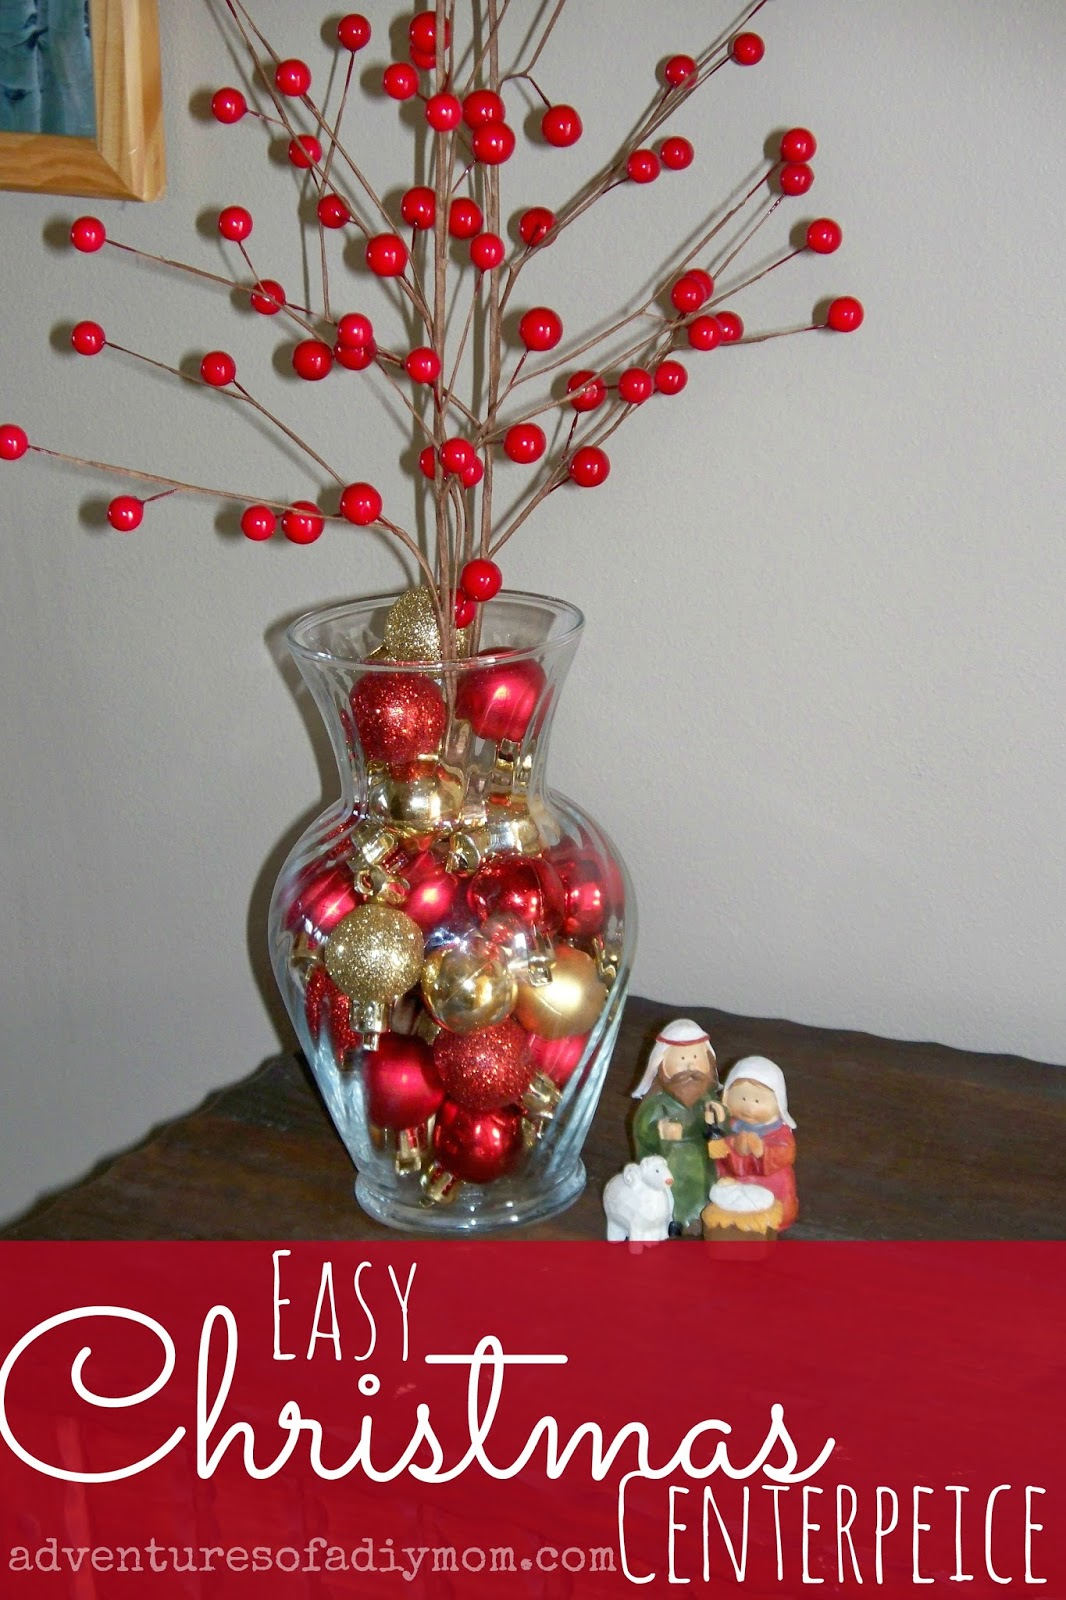 Decorating Ideas > Easy Christmas Centerpiece  Adventures Of A DIY Mom ~ 004028_Christmas Centerpiece Ideas Easy